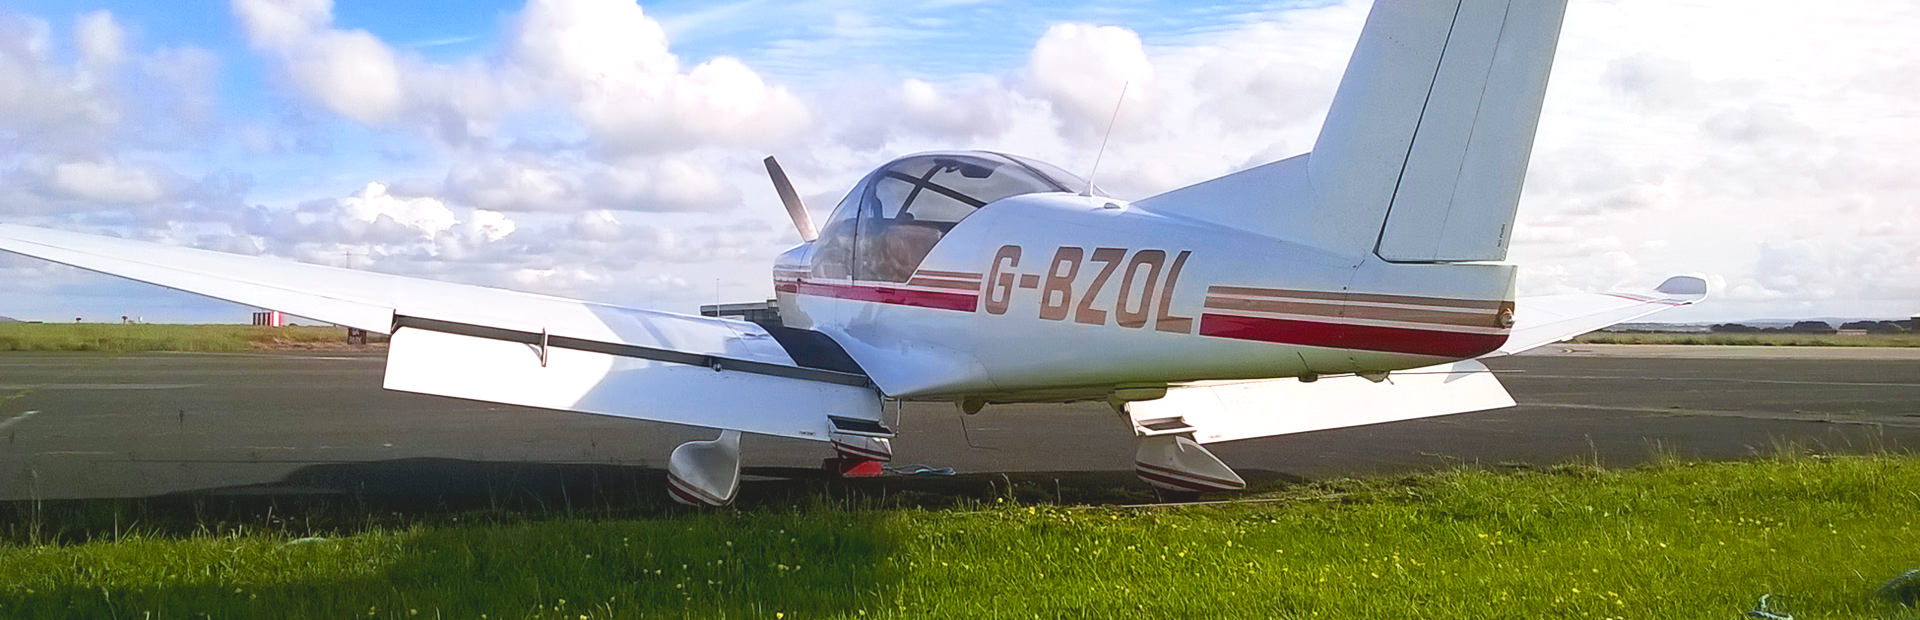 G-BZOL, Robin R3000 at Flynqy Pilot Training